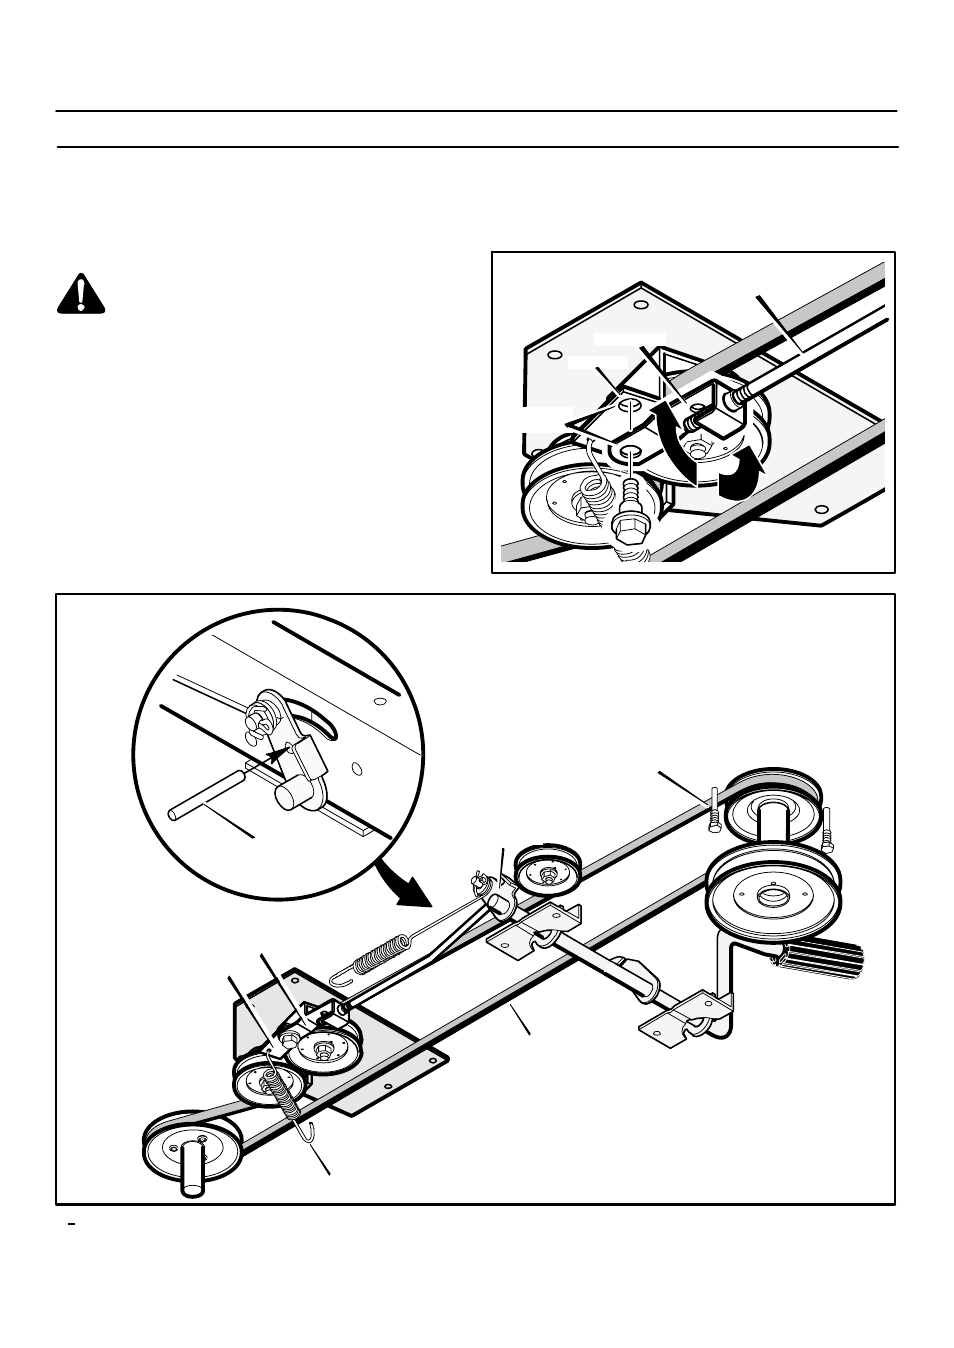 Maintenance, How to check and adjust the motion drive belt